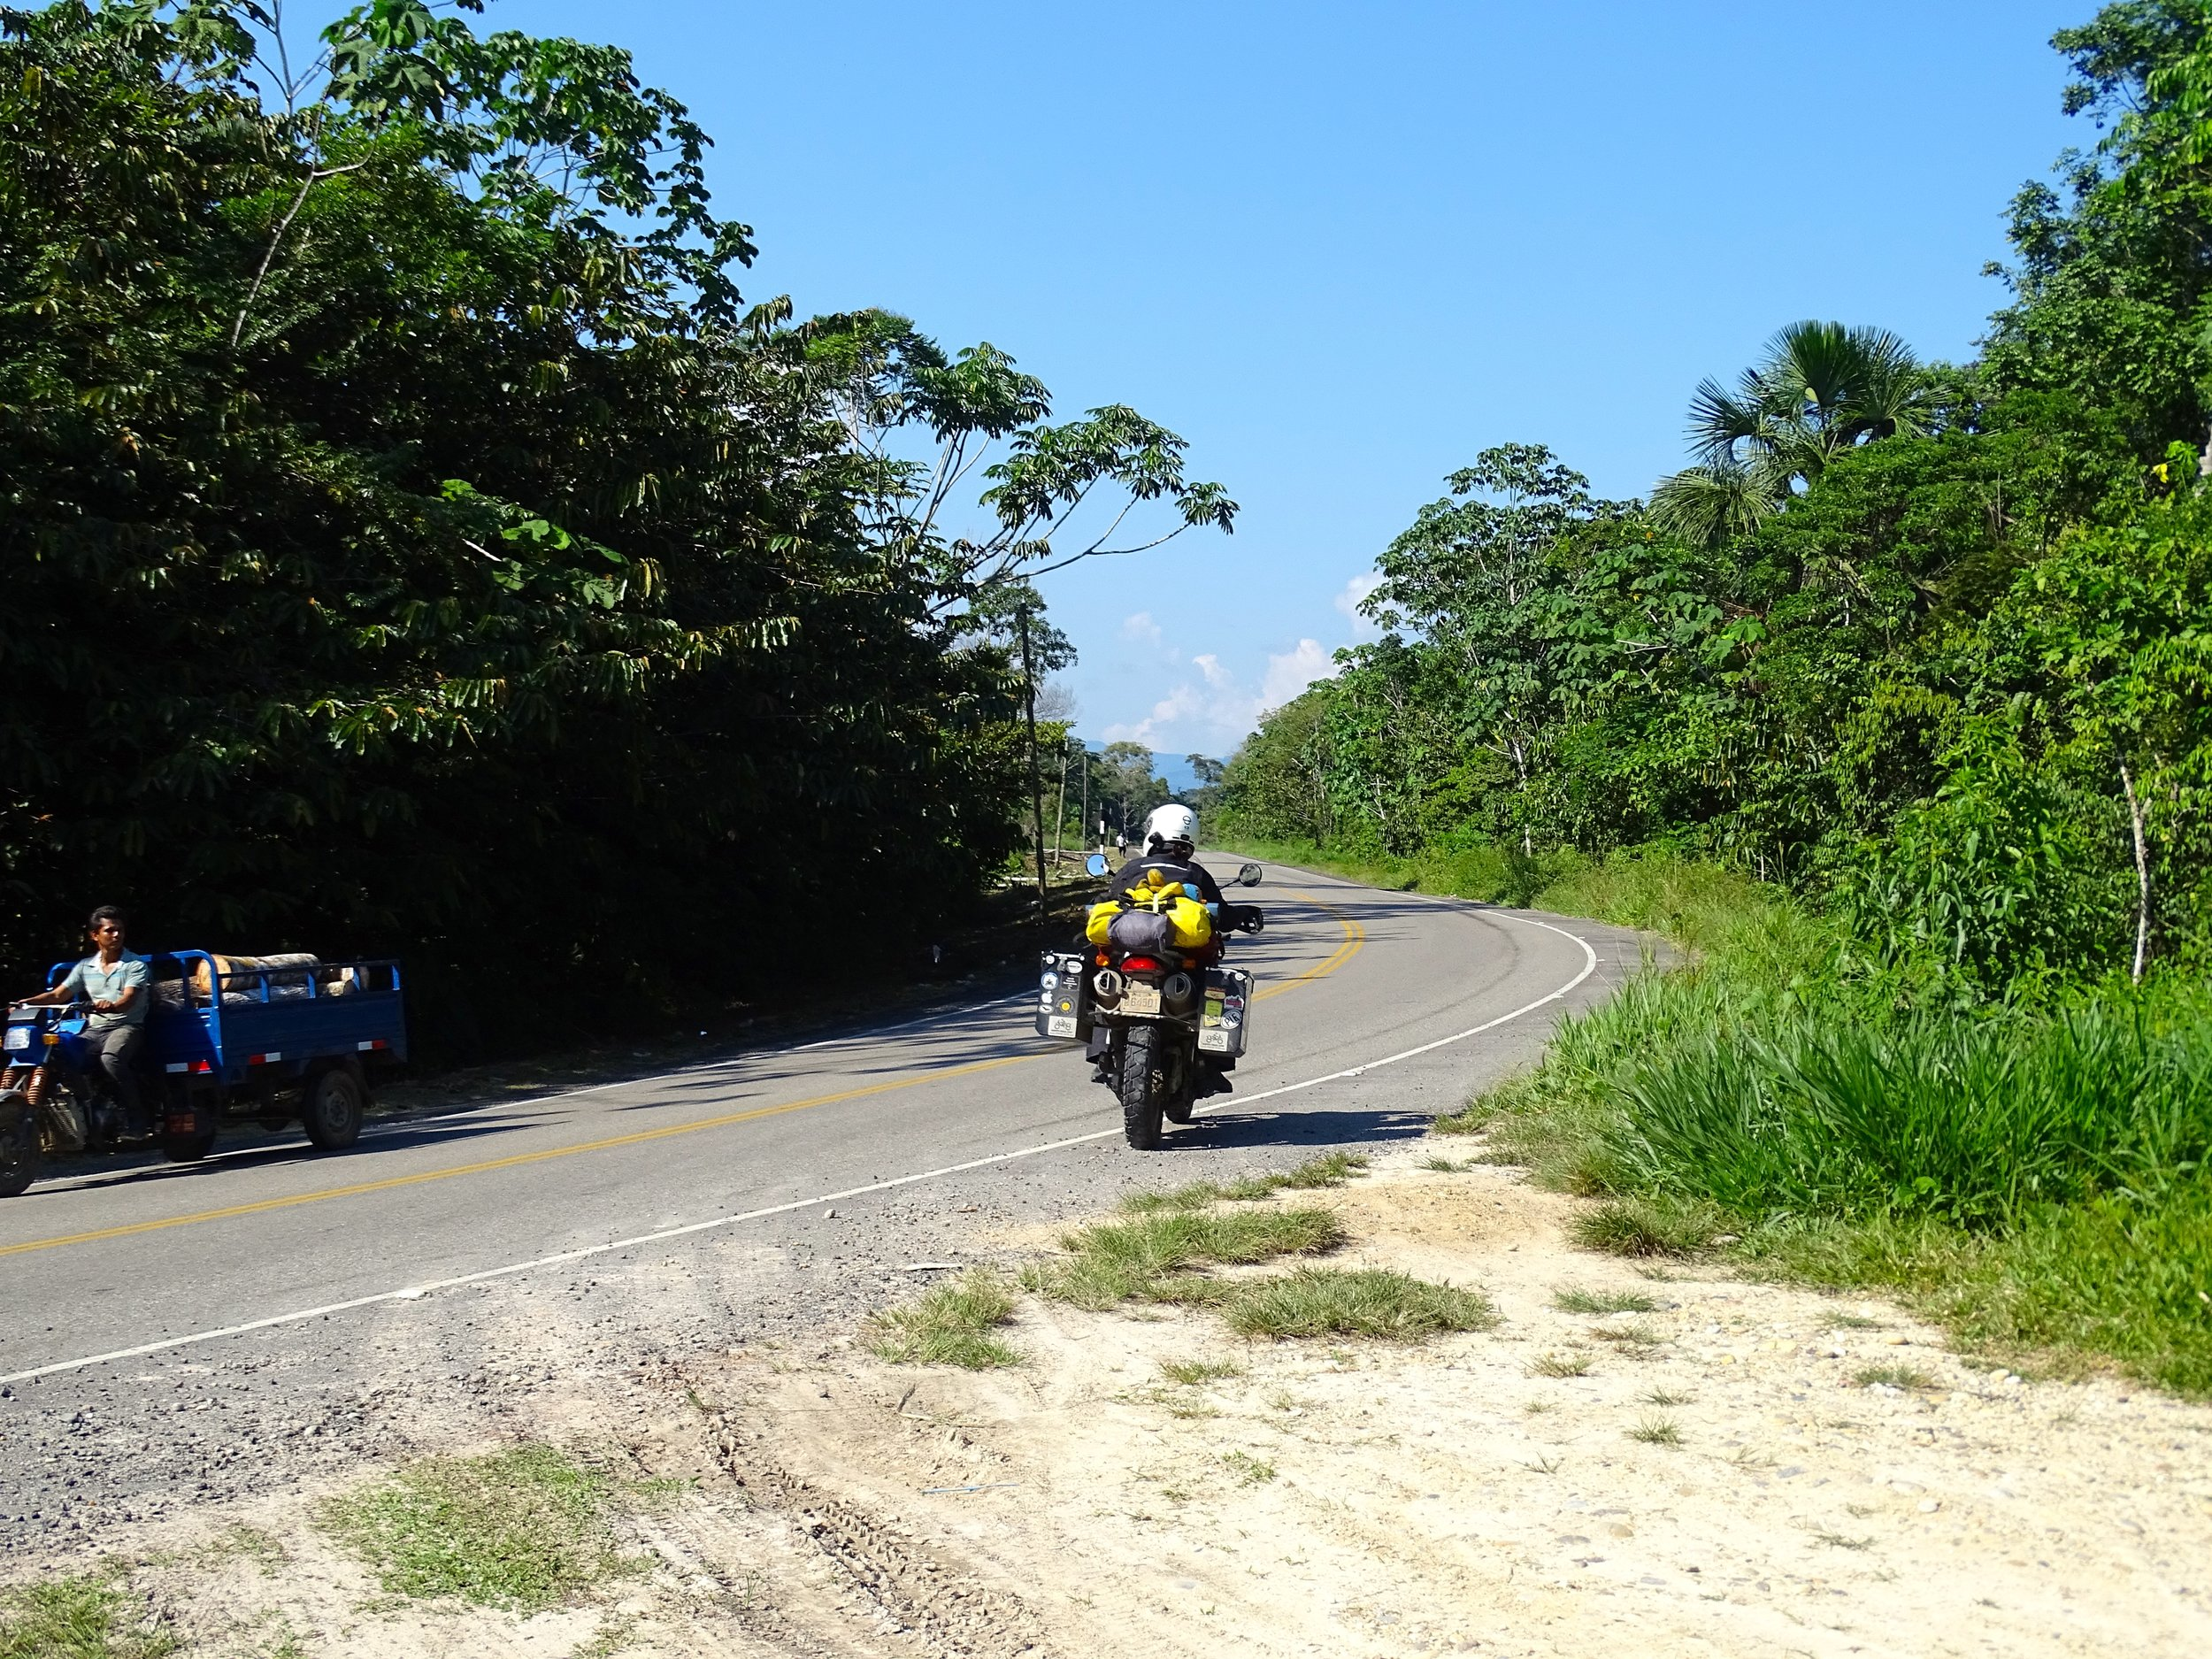 This area along the eastern base of the Andes is warm and humid.  Soon the road rolls out onto the flats, and Amazonia begins in earnest.